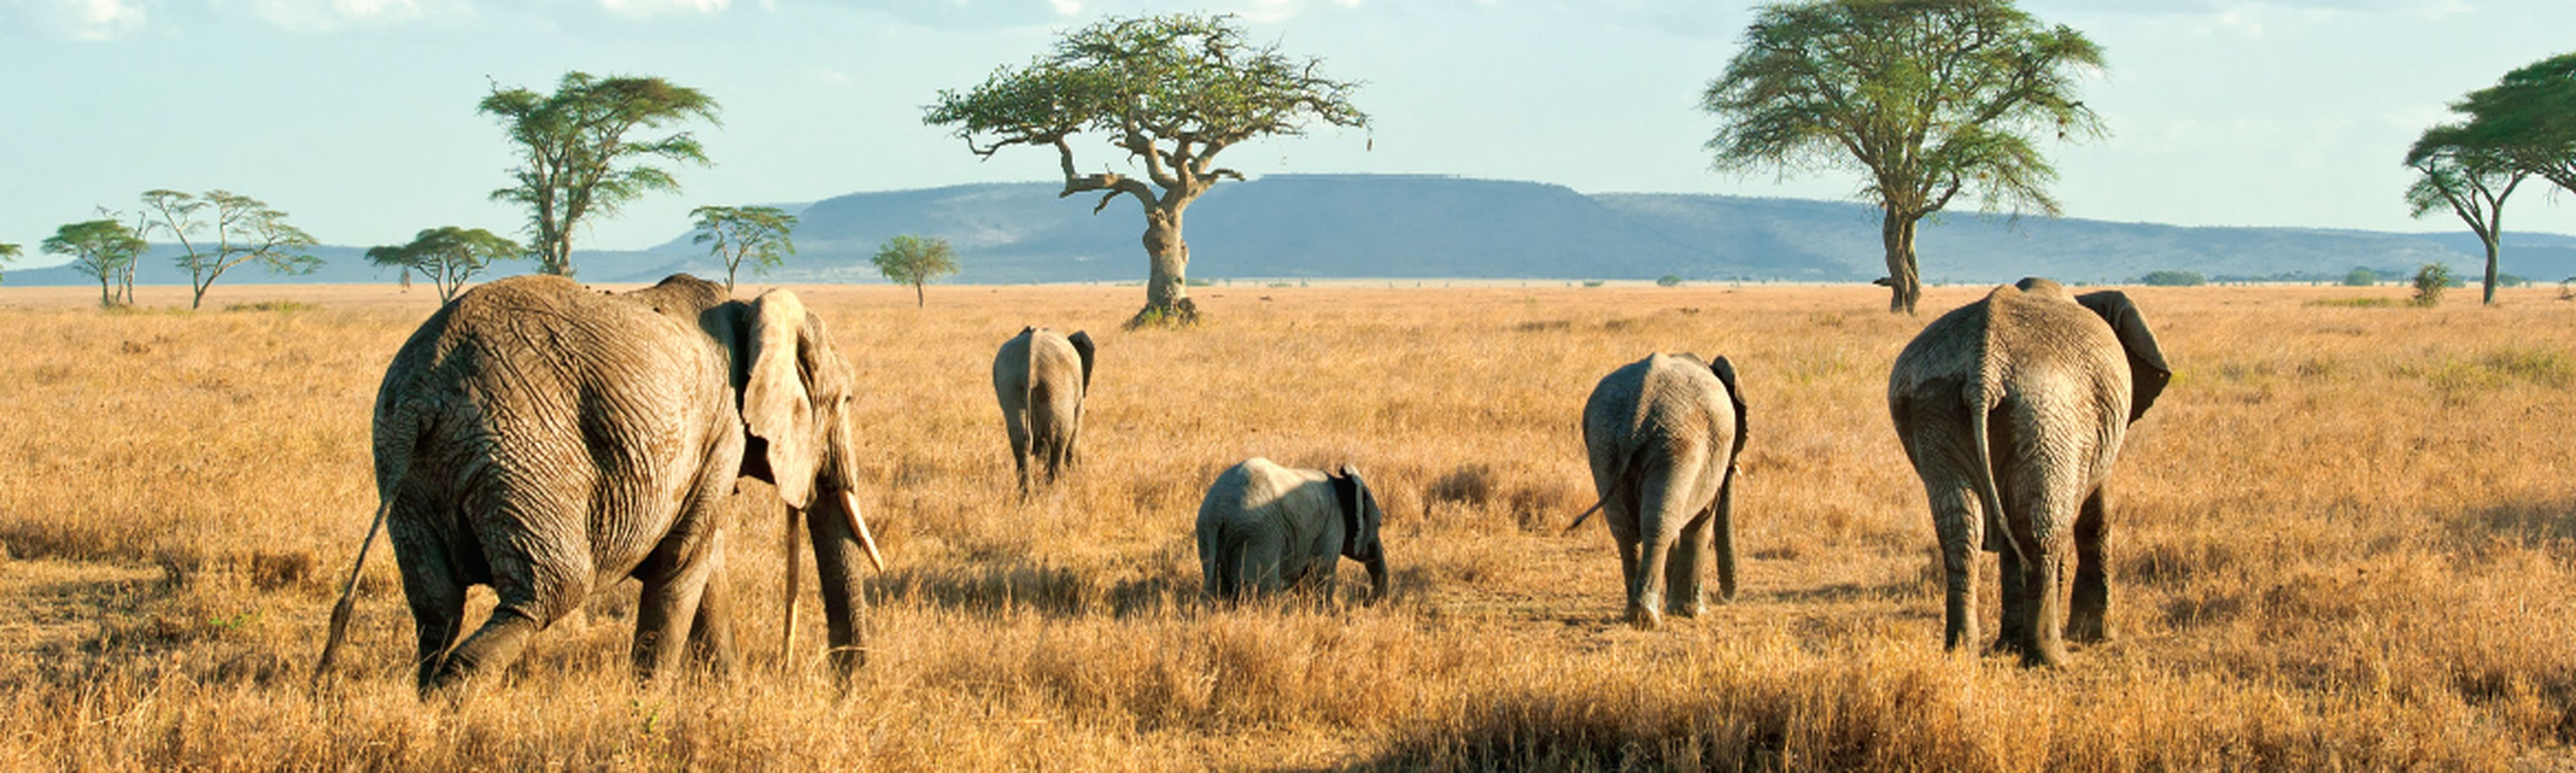 elephants walking in plains in kenya africa